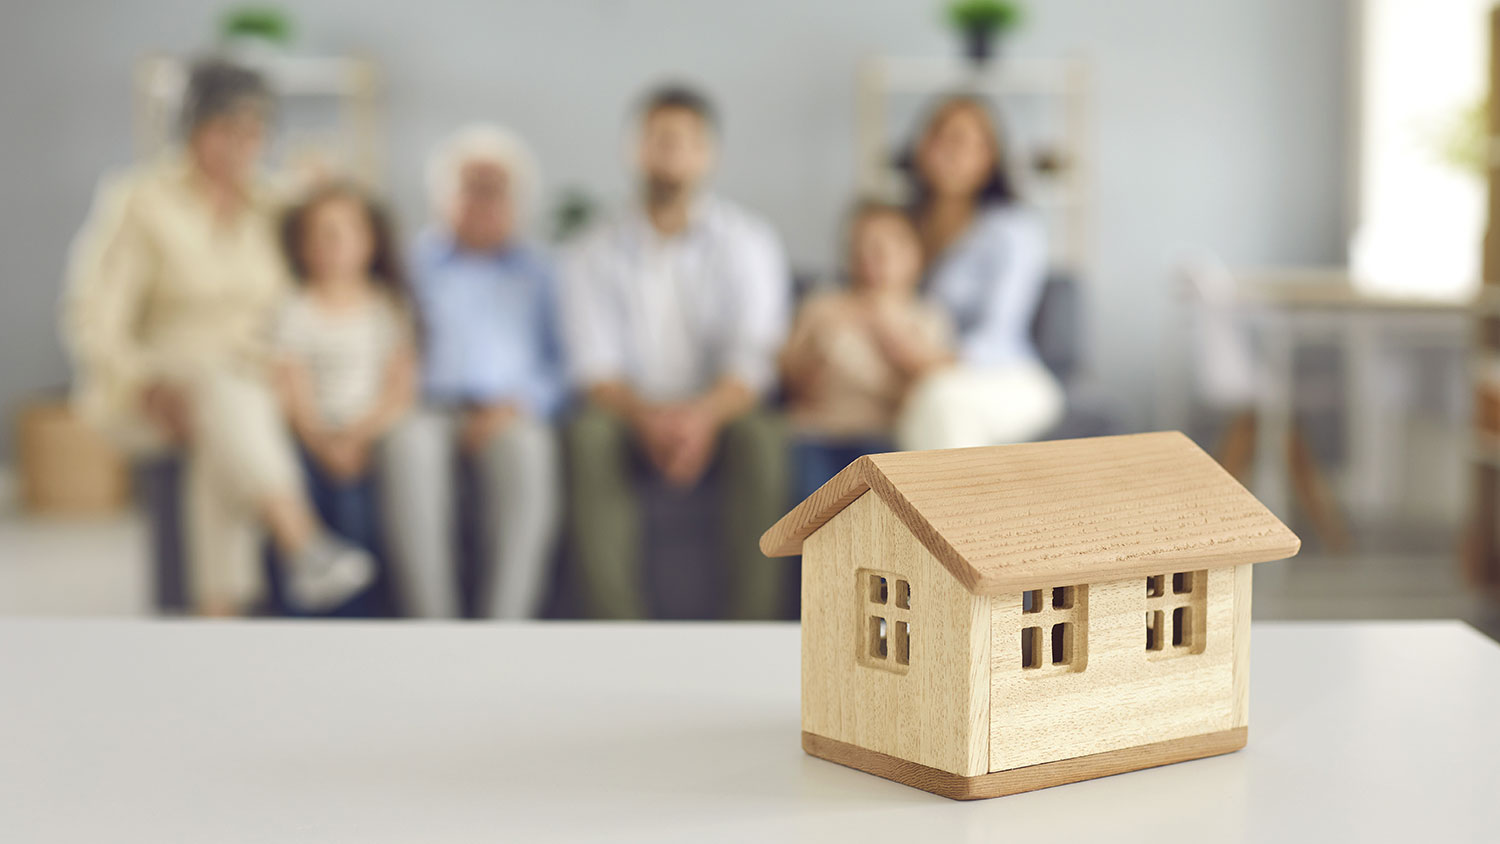 HOW LIFE STAGES AFFECT HOMEOWNERSHIP